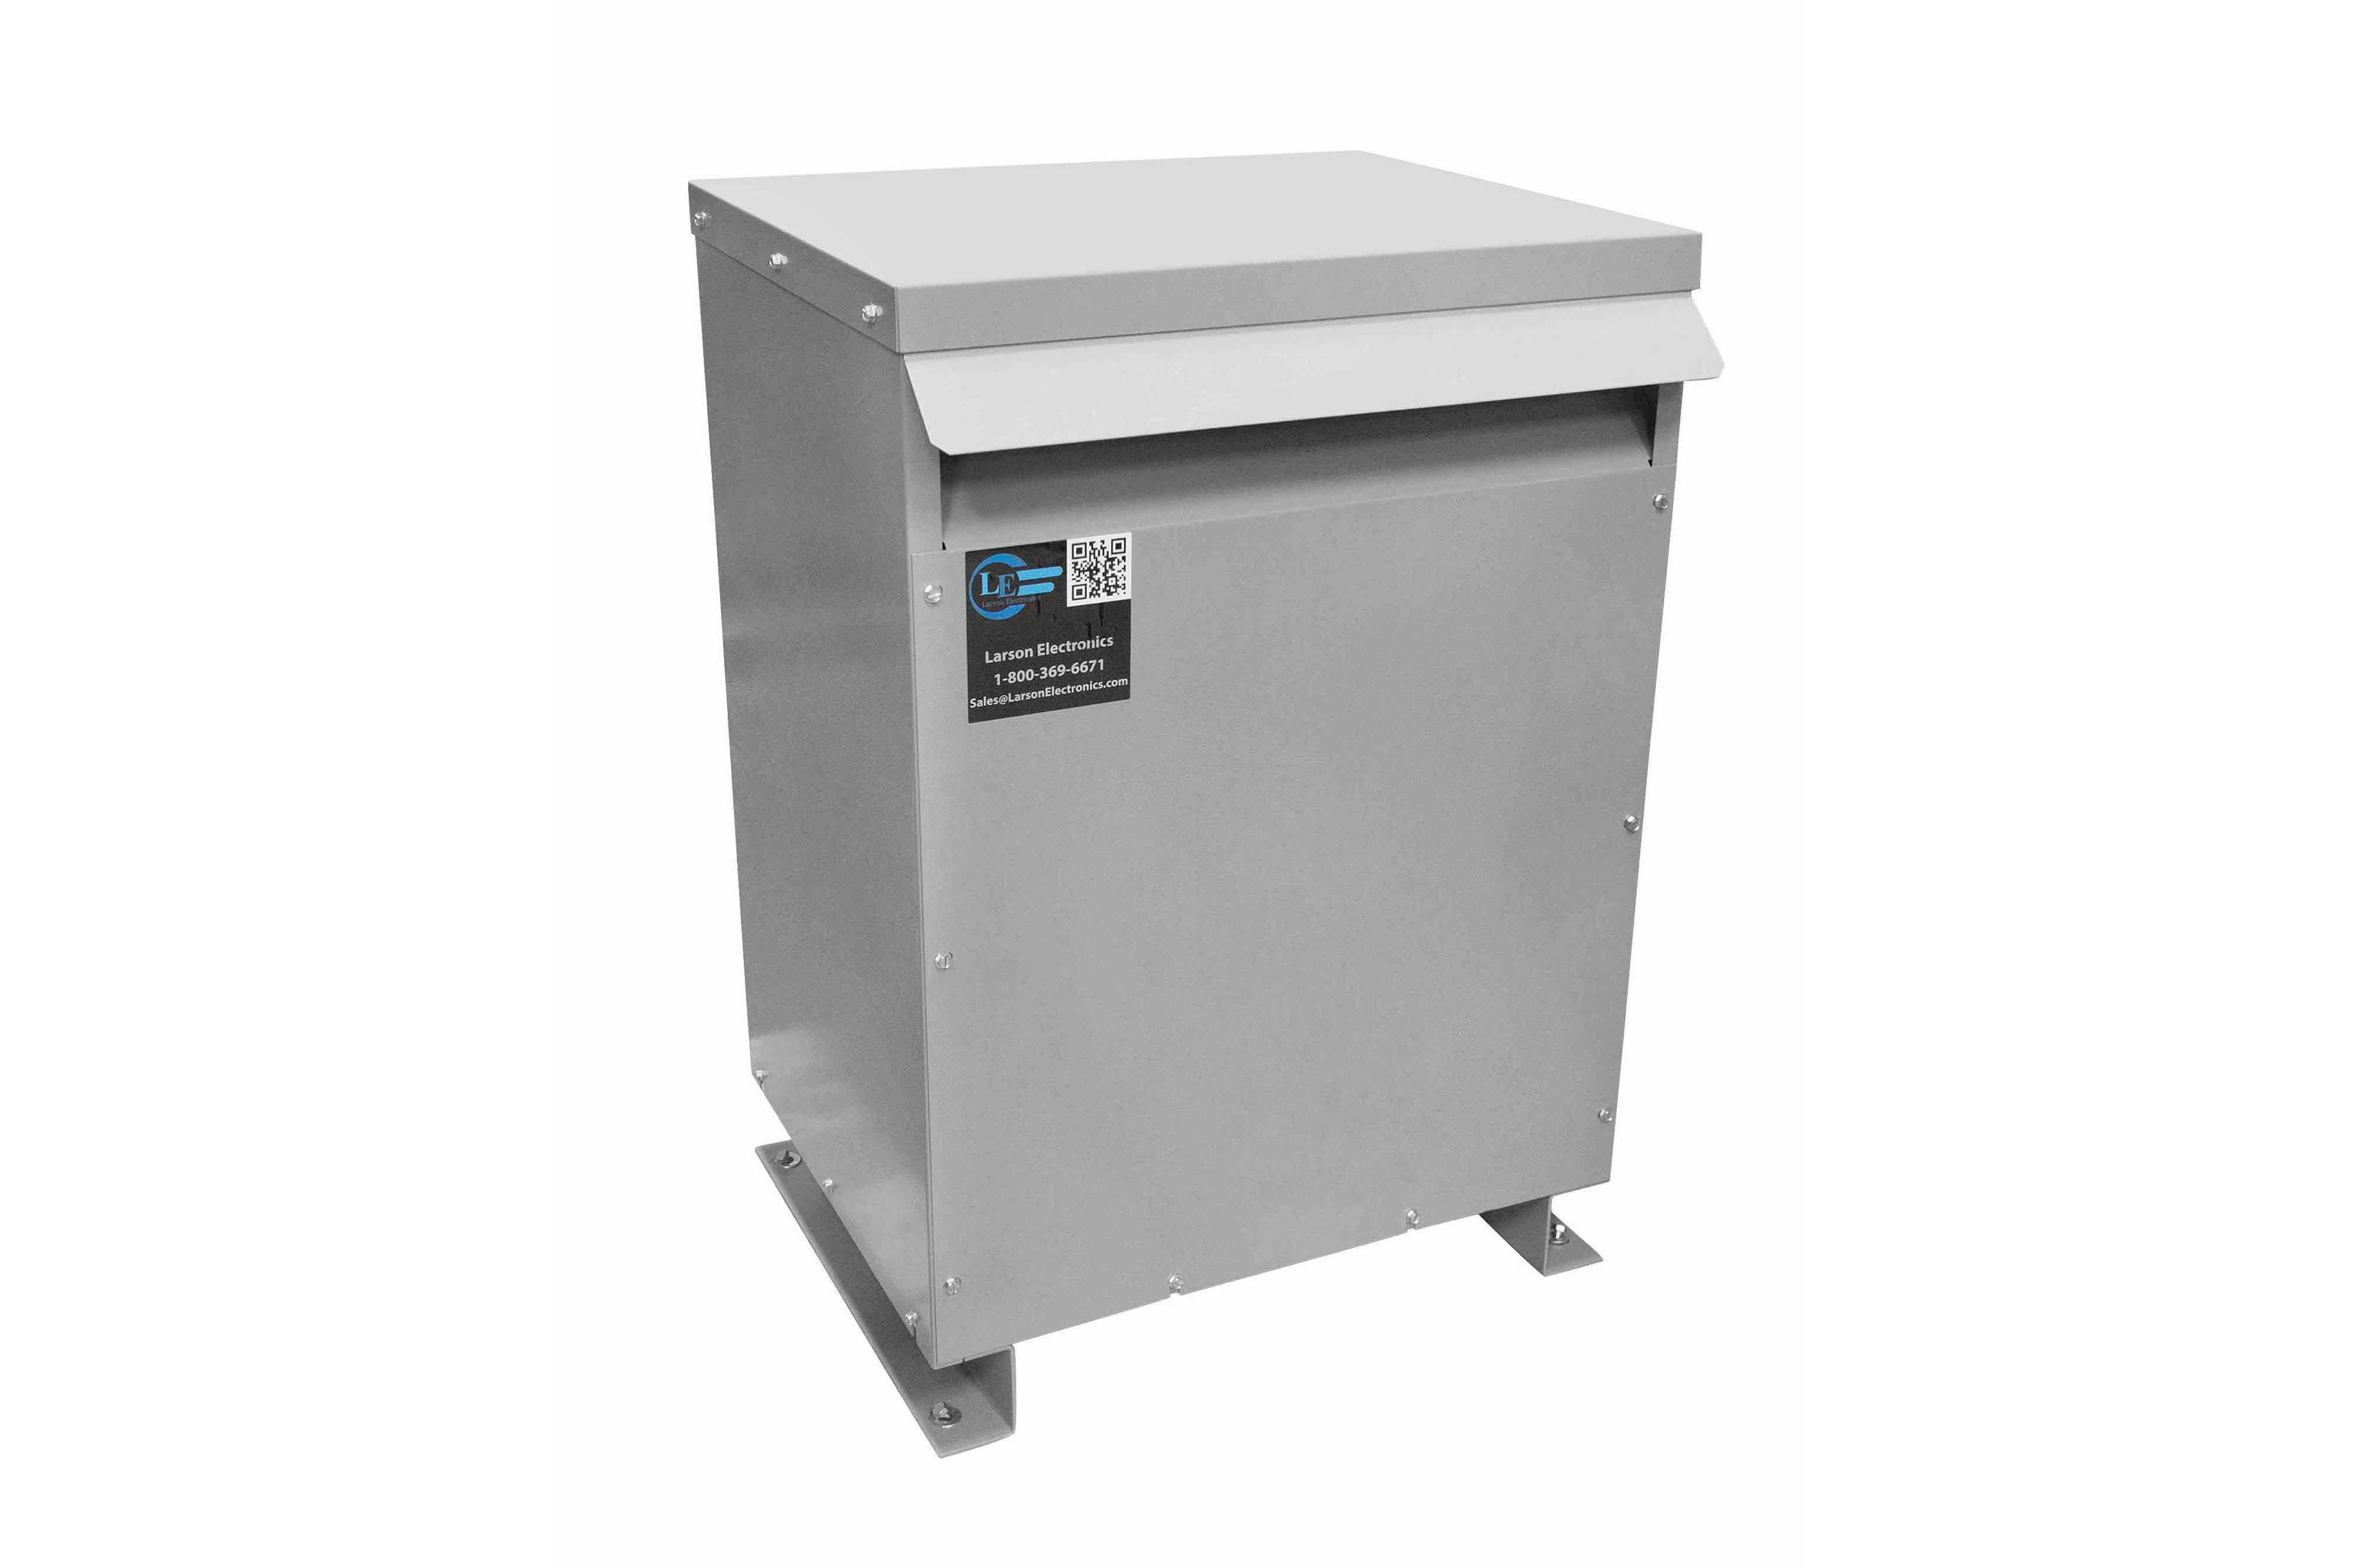 110 kVA 3PH Isolation Transformer, 380V Delta Primary, 600V Delta Secondary, N3R, Ventilated, 60 Hz